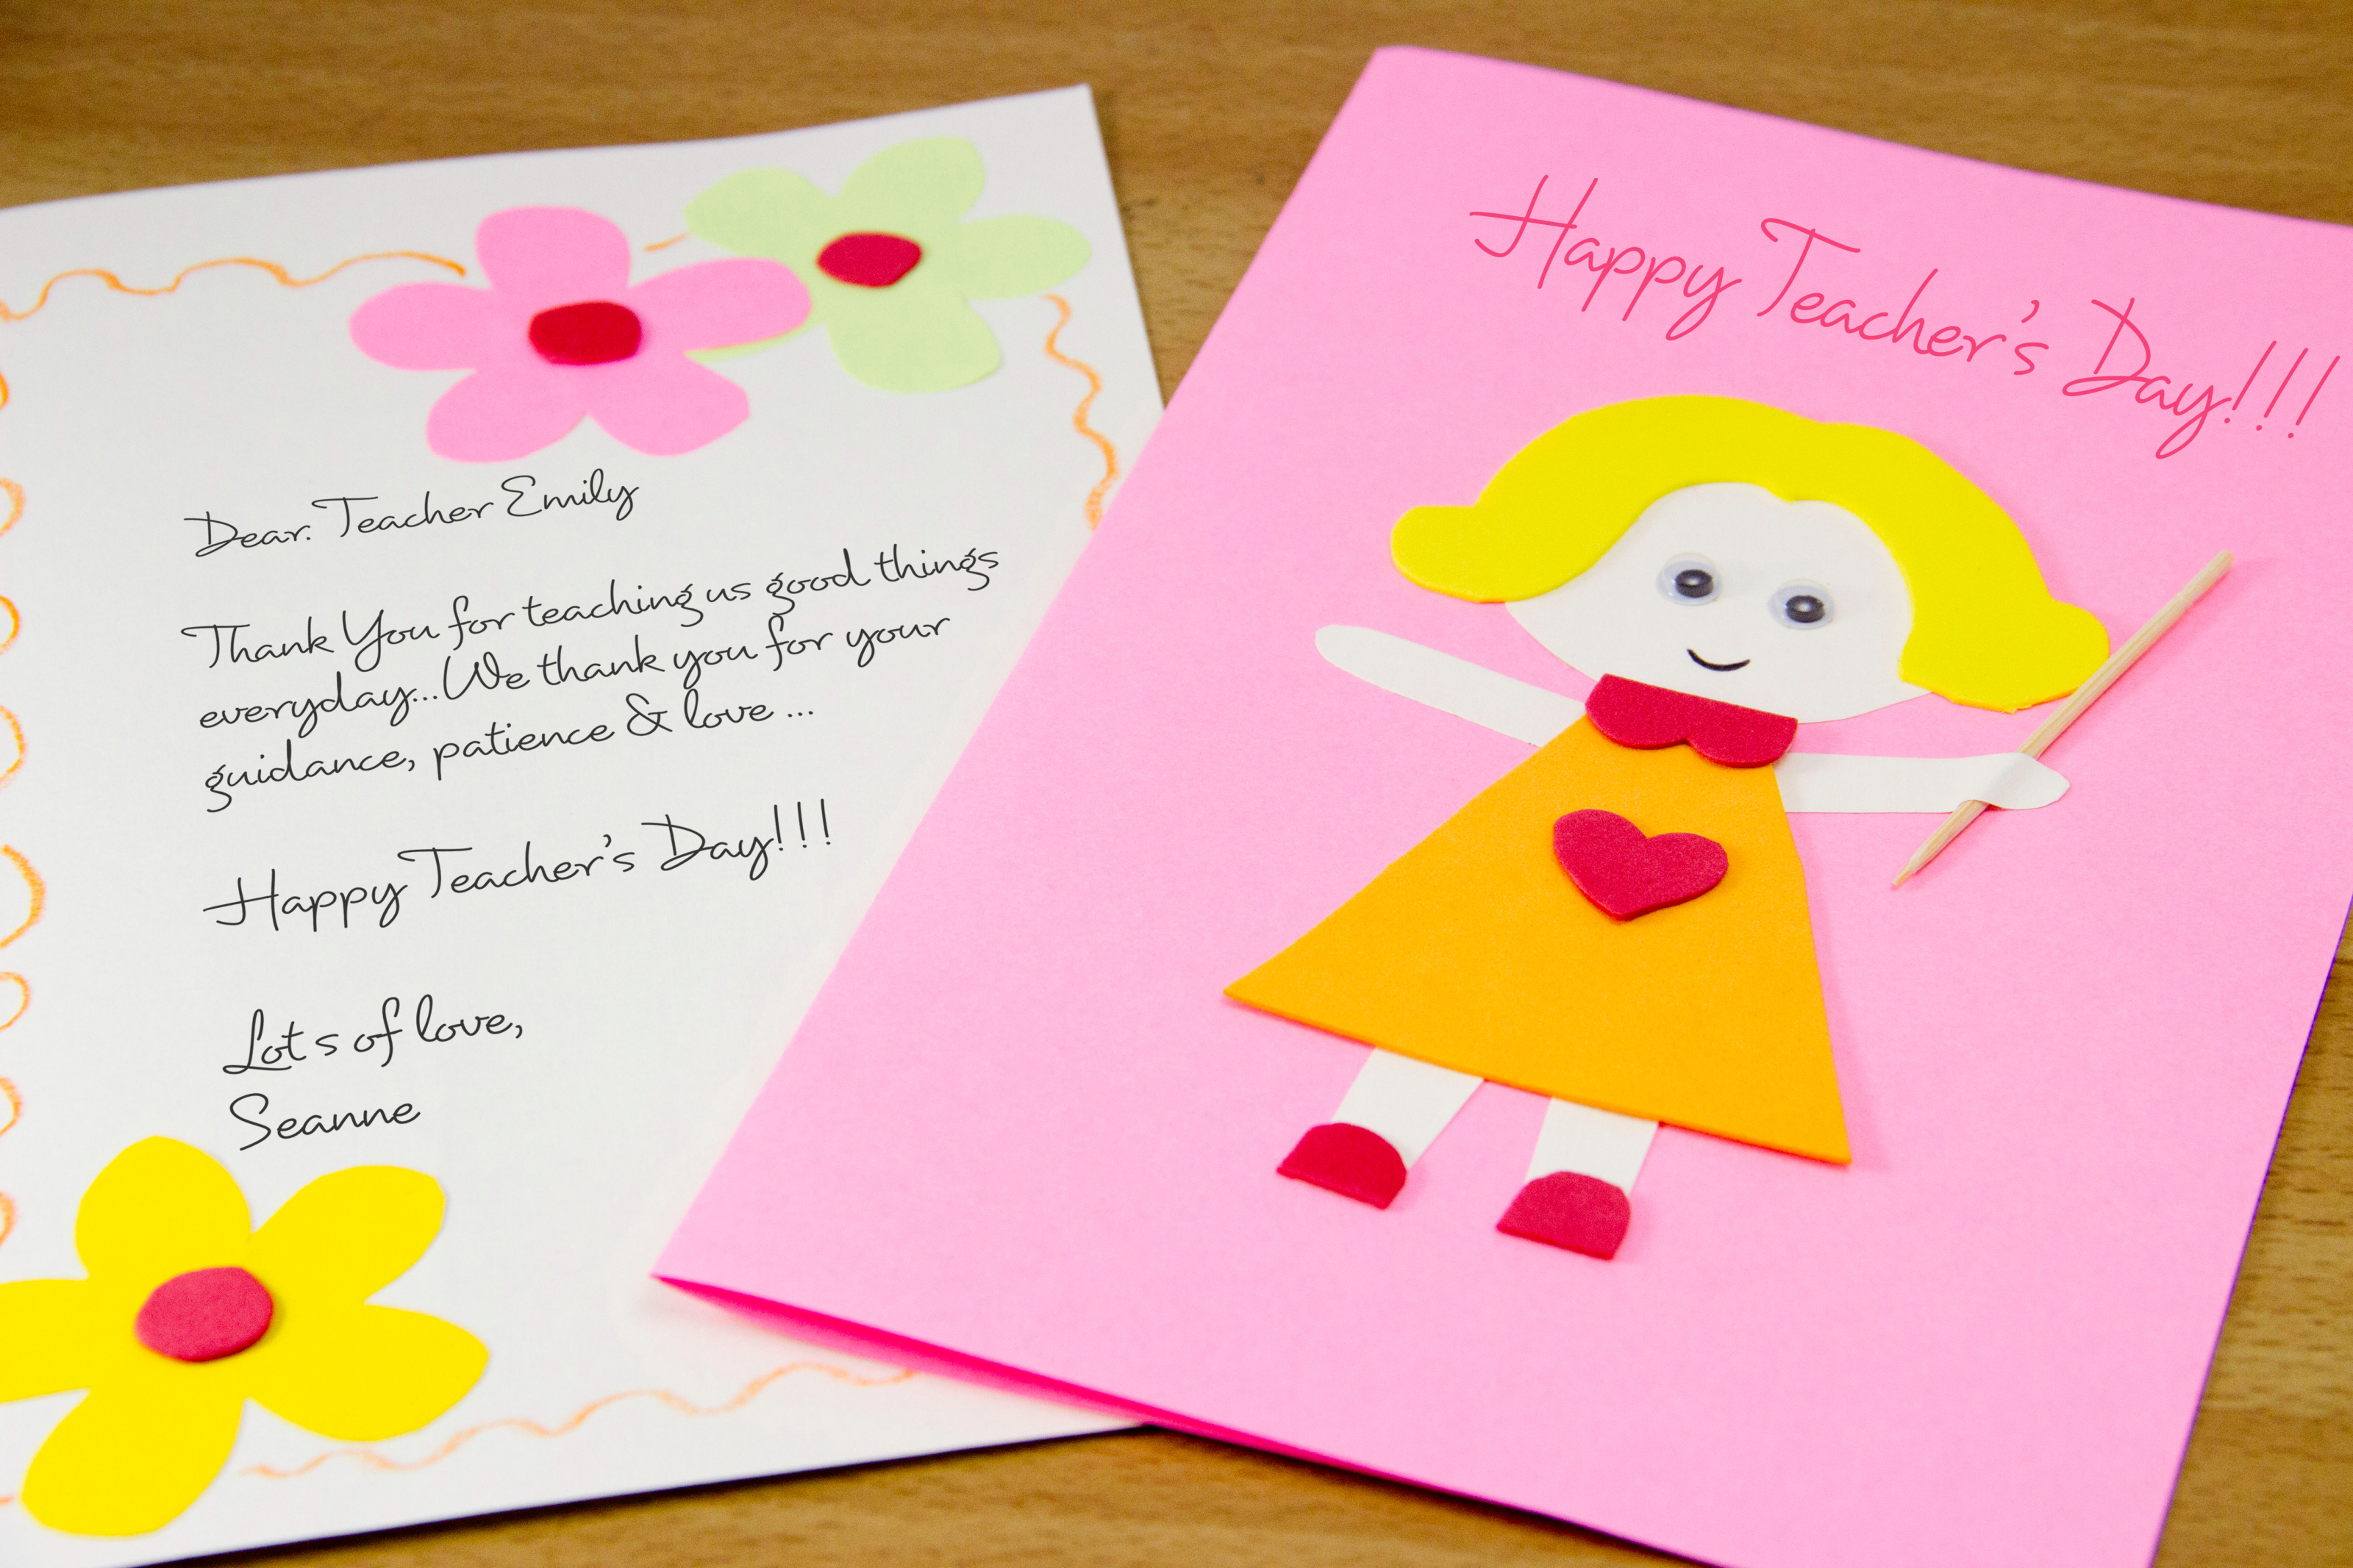 Teachers Day Greeting Cards 2016 - E Greeting(Free Download)